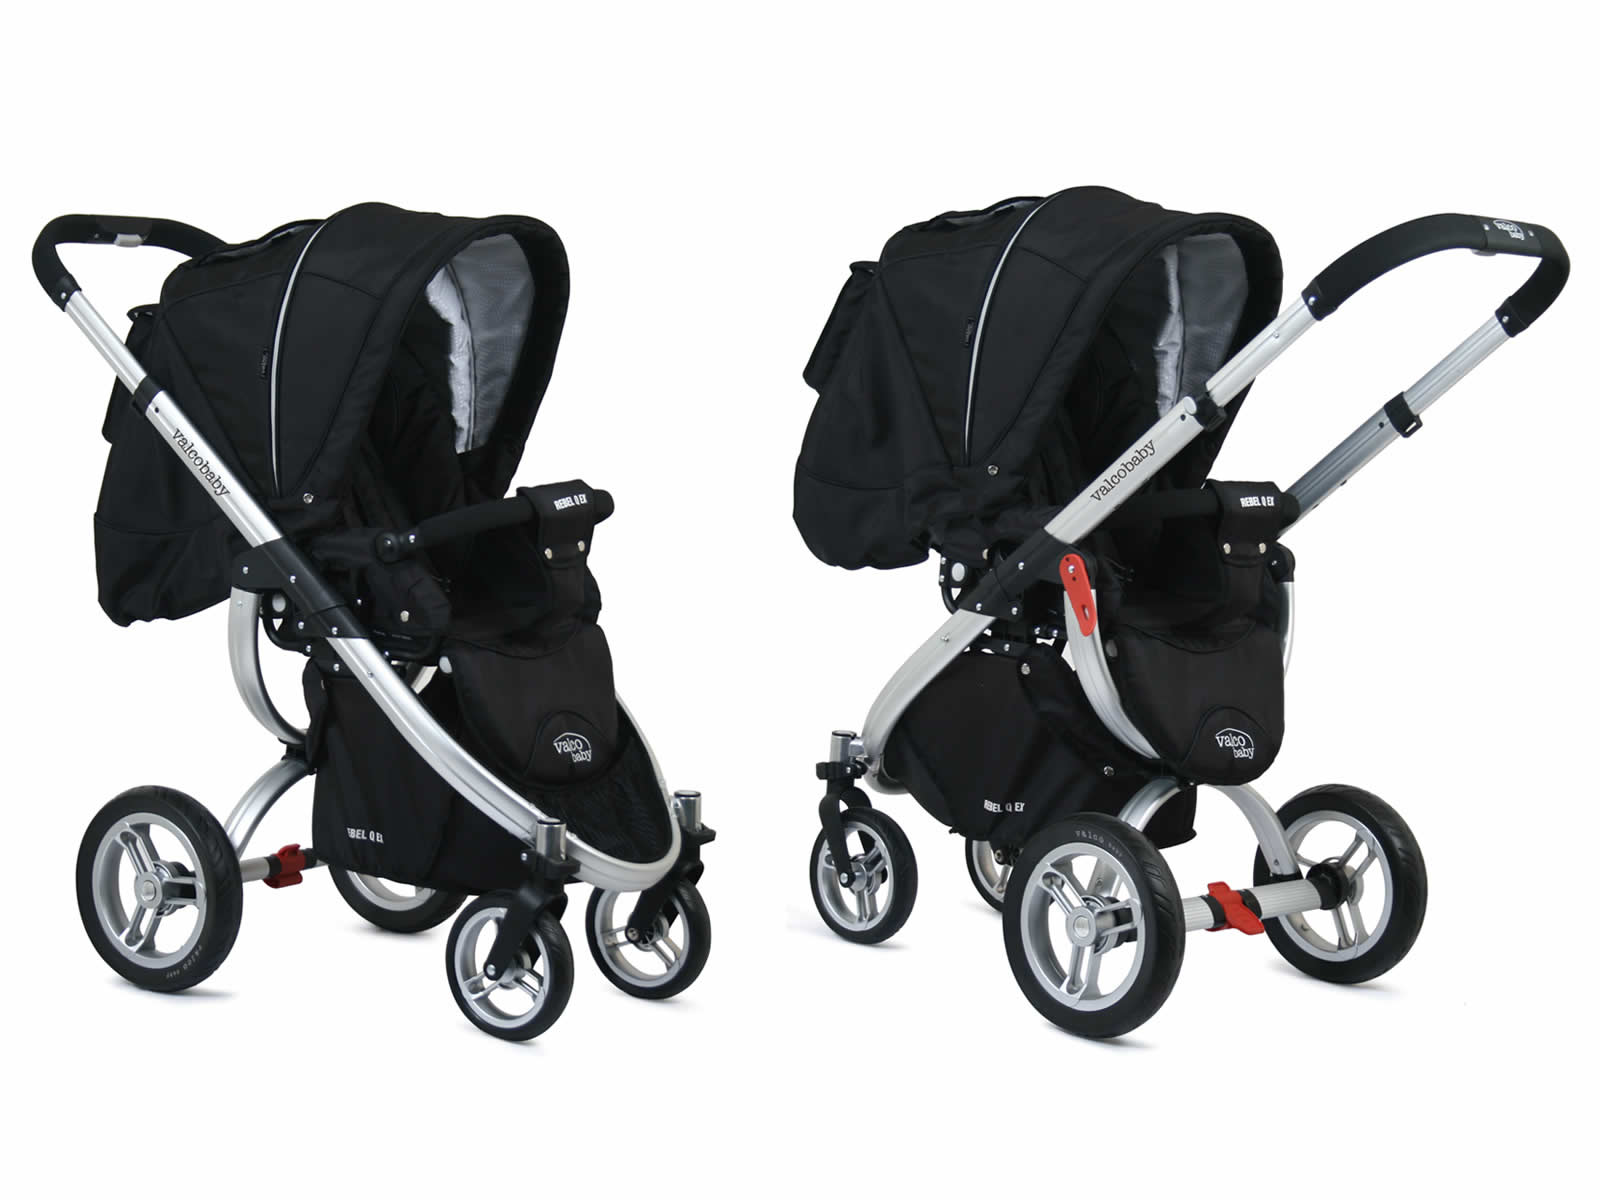 Stroller Hitch Toddler Rebel Q R 8000 Valco Baby South Africa